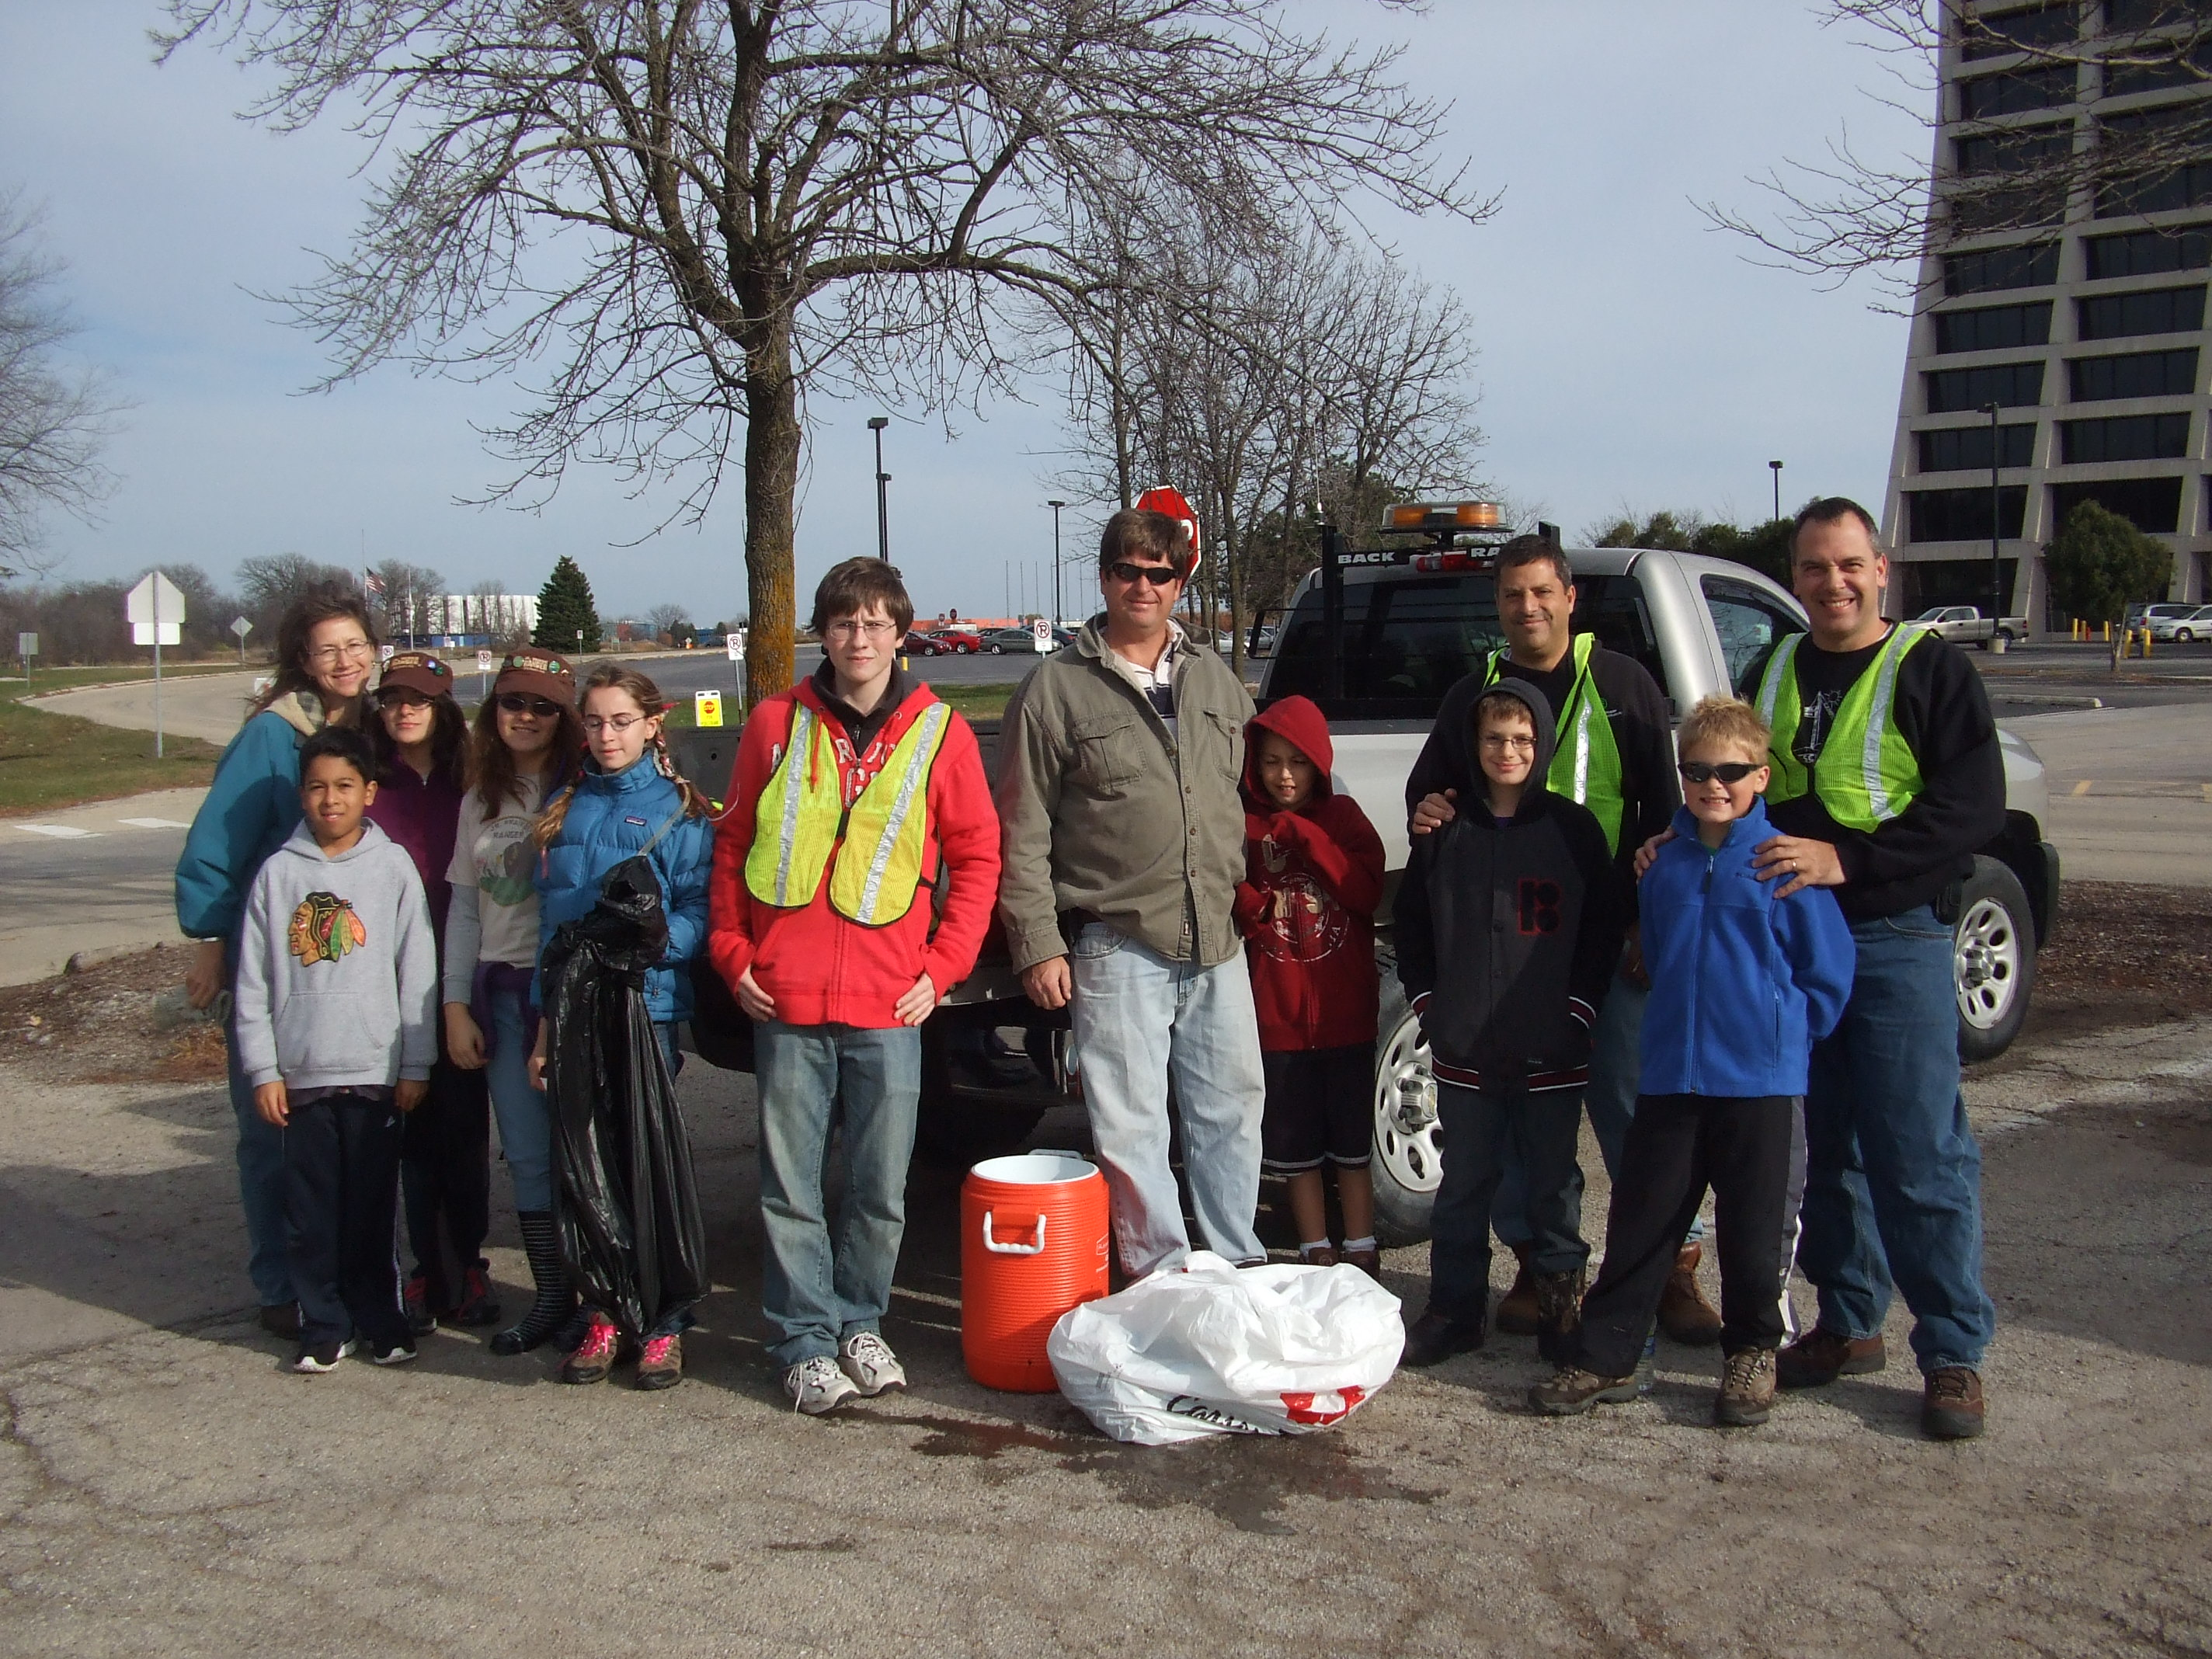 On Saturday, Nov. 12, Michael Shemanske, son of Dave Shemanske (FESS), organized a cleanup of the area outside of Wilson Hall all the way to Pine Street and Kirk Road as part of a school leadership project. The volunteers, including Prarie Rangers and Cub Scout Pack 153, collected several bags of garbage. Photo: Dave Shemanske